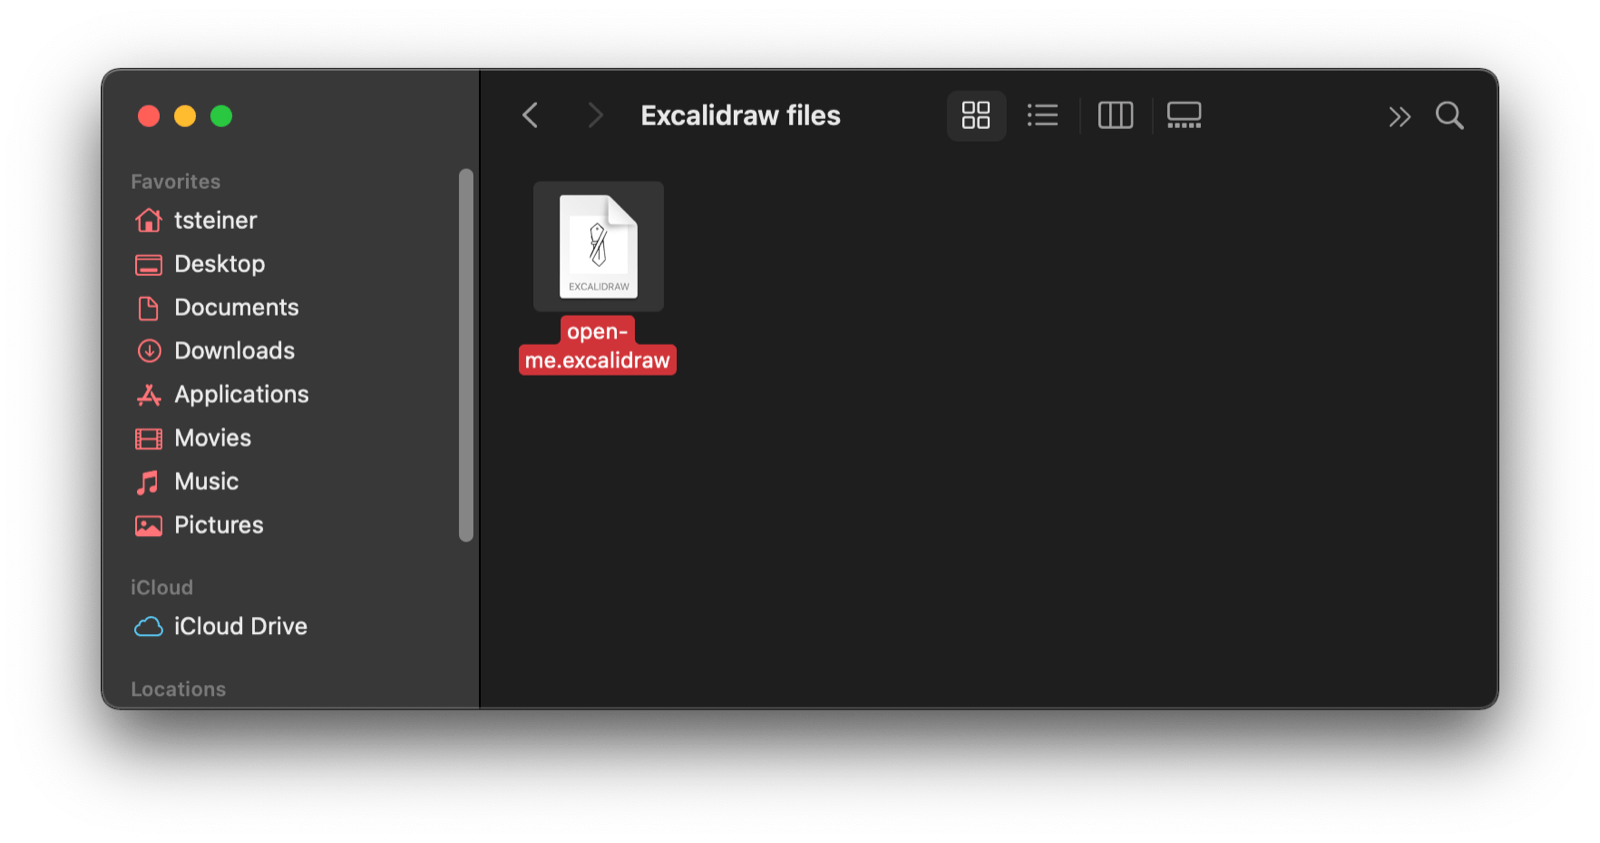 The macOS finder window with an Excalidraw file.